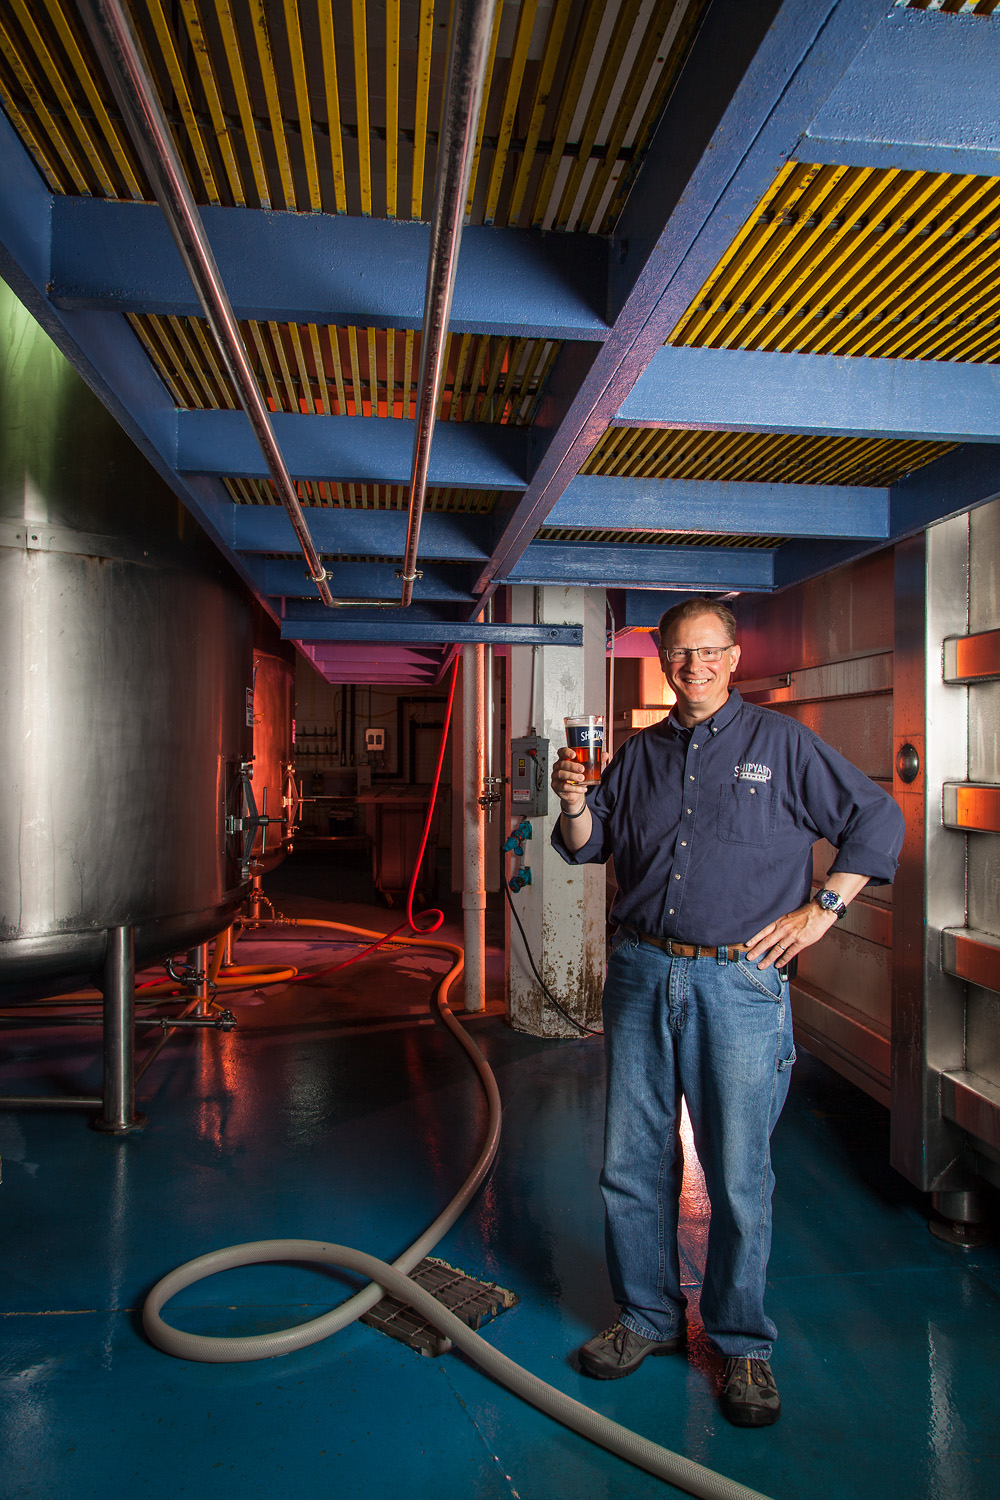 Bruce Elam, Brewer Shipyard Brewing Co. Portland, ME Established in 1994